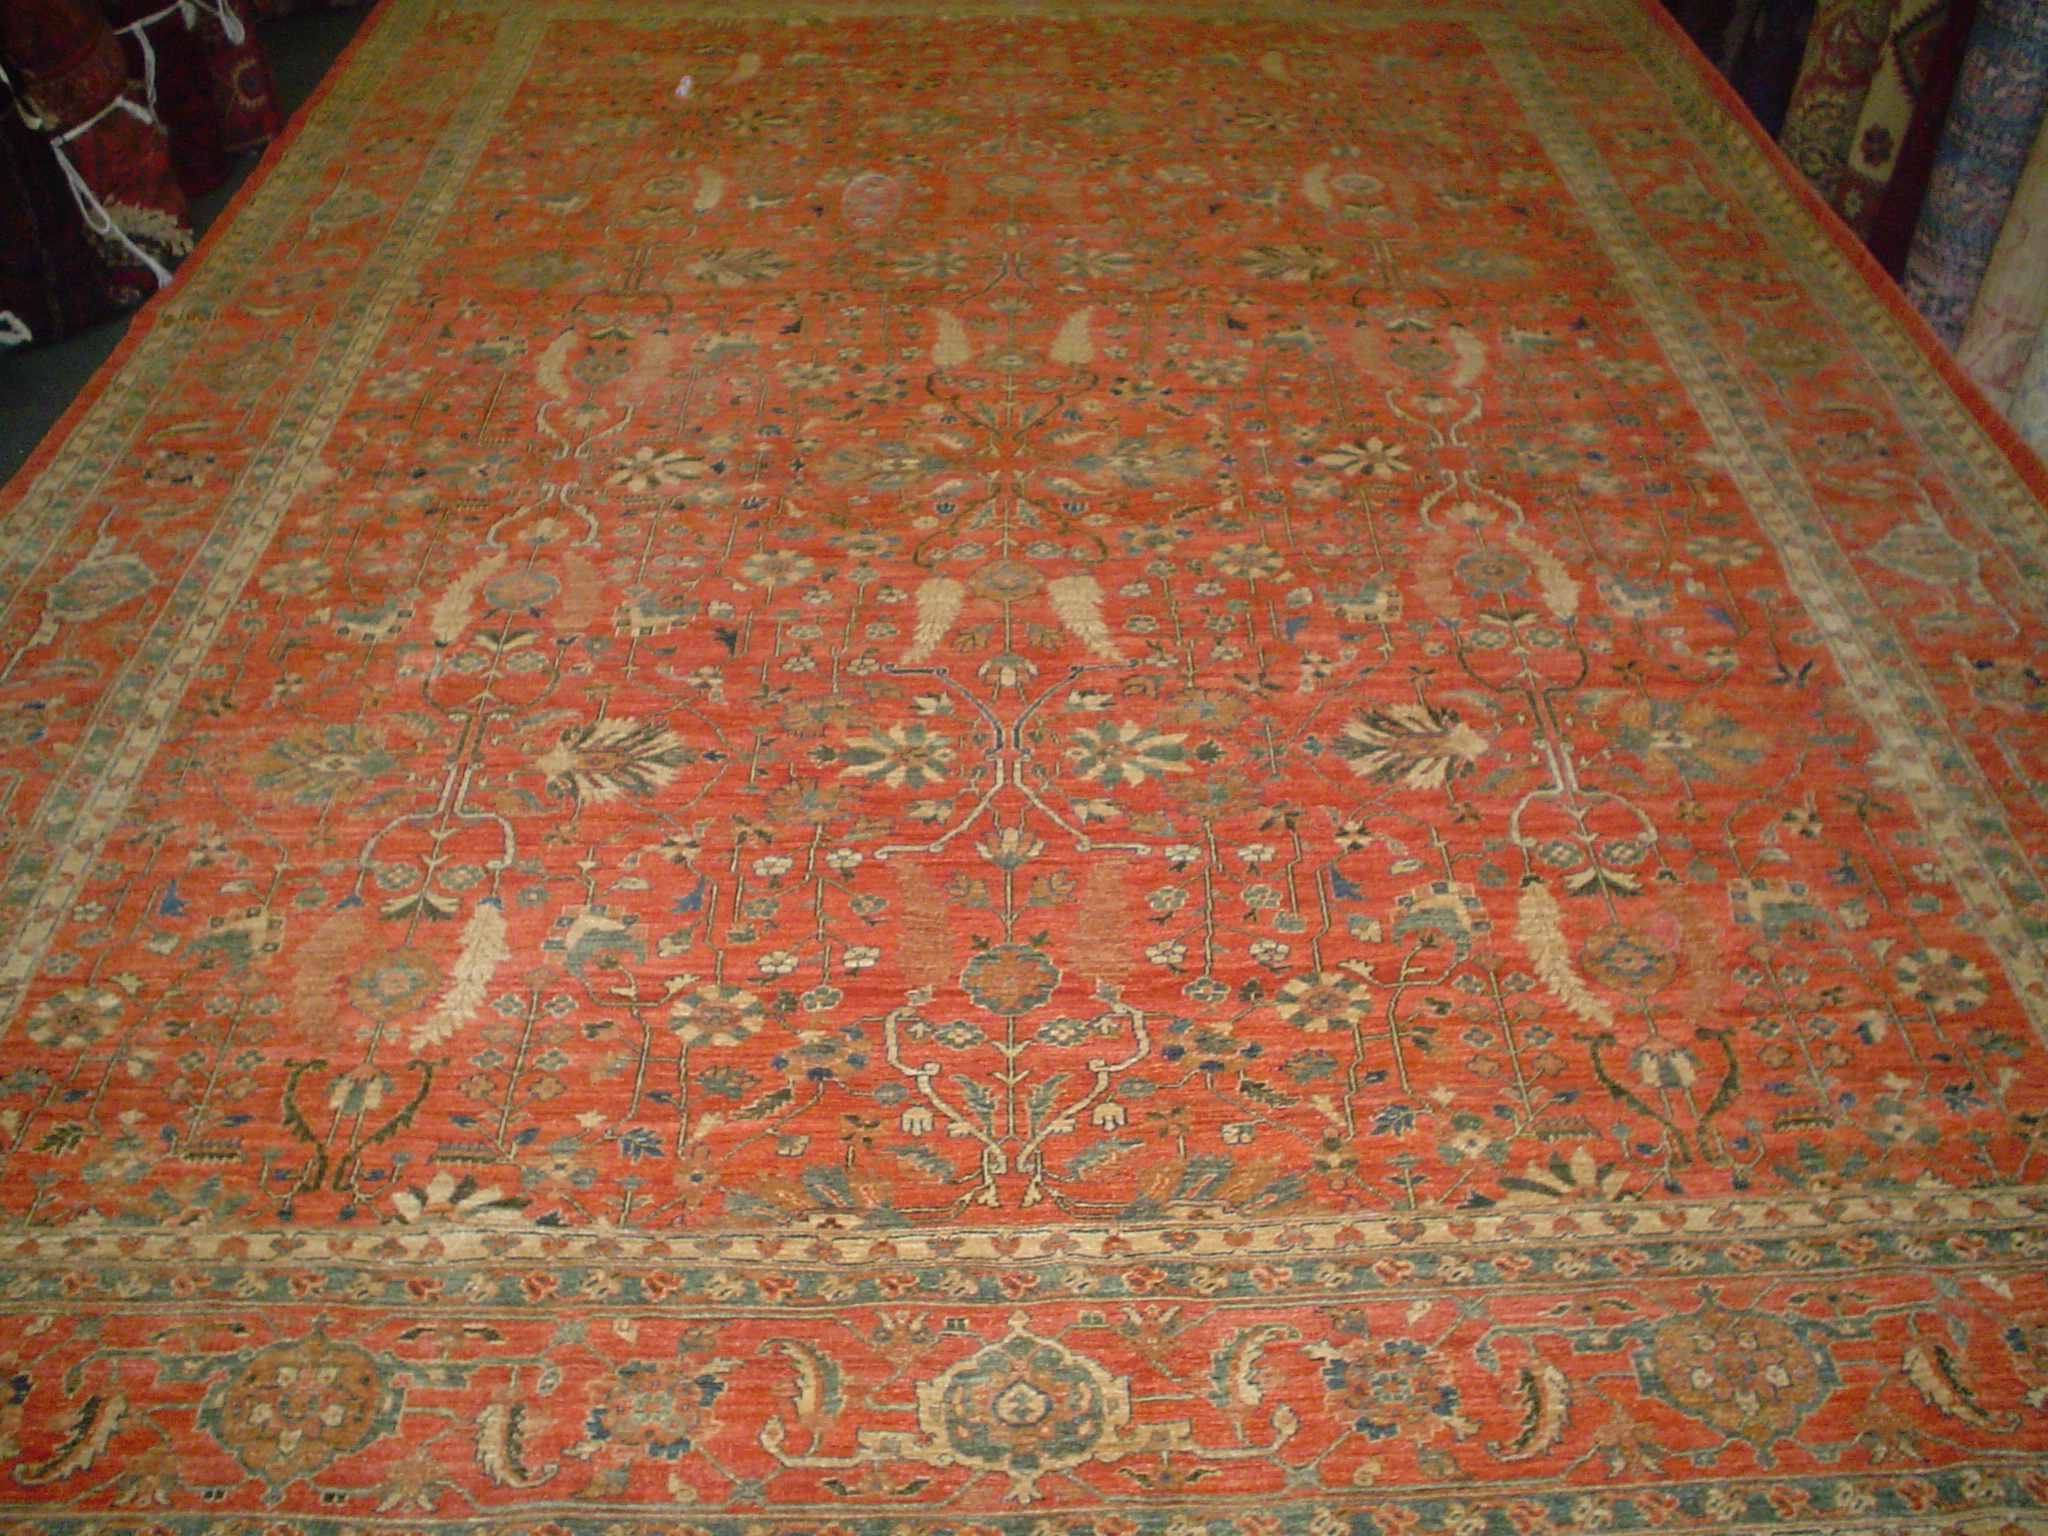 #9) Gorgeous 10 x 14 Sultanabad rug. Afghanistan. Salmon with soft blue-green accents in an overall design.